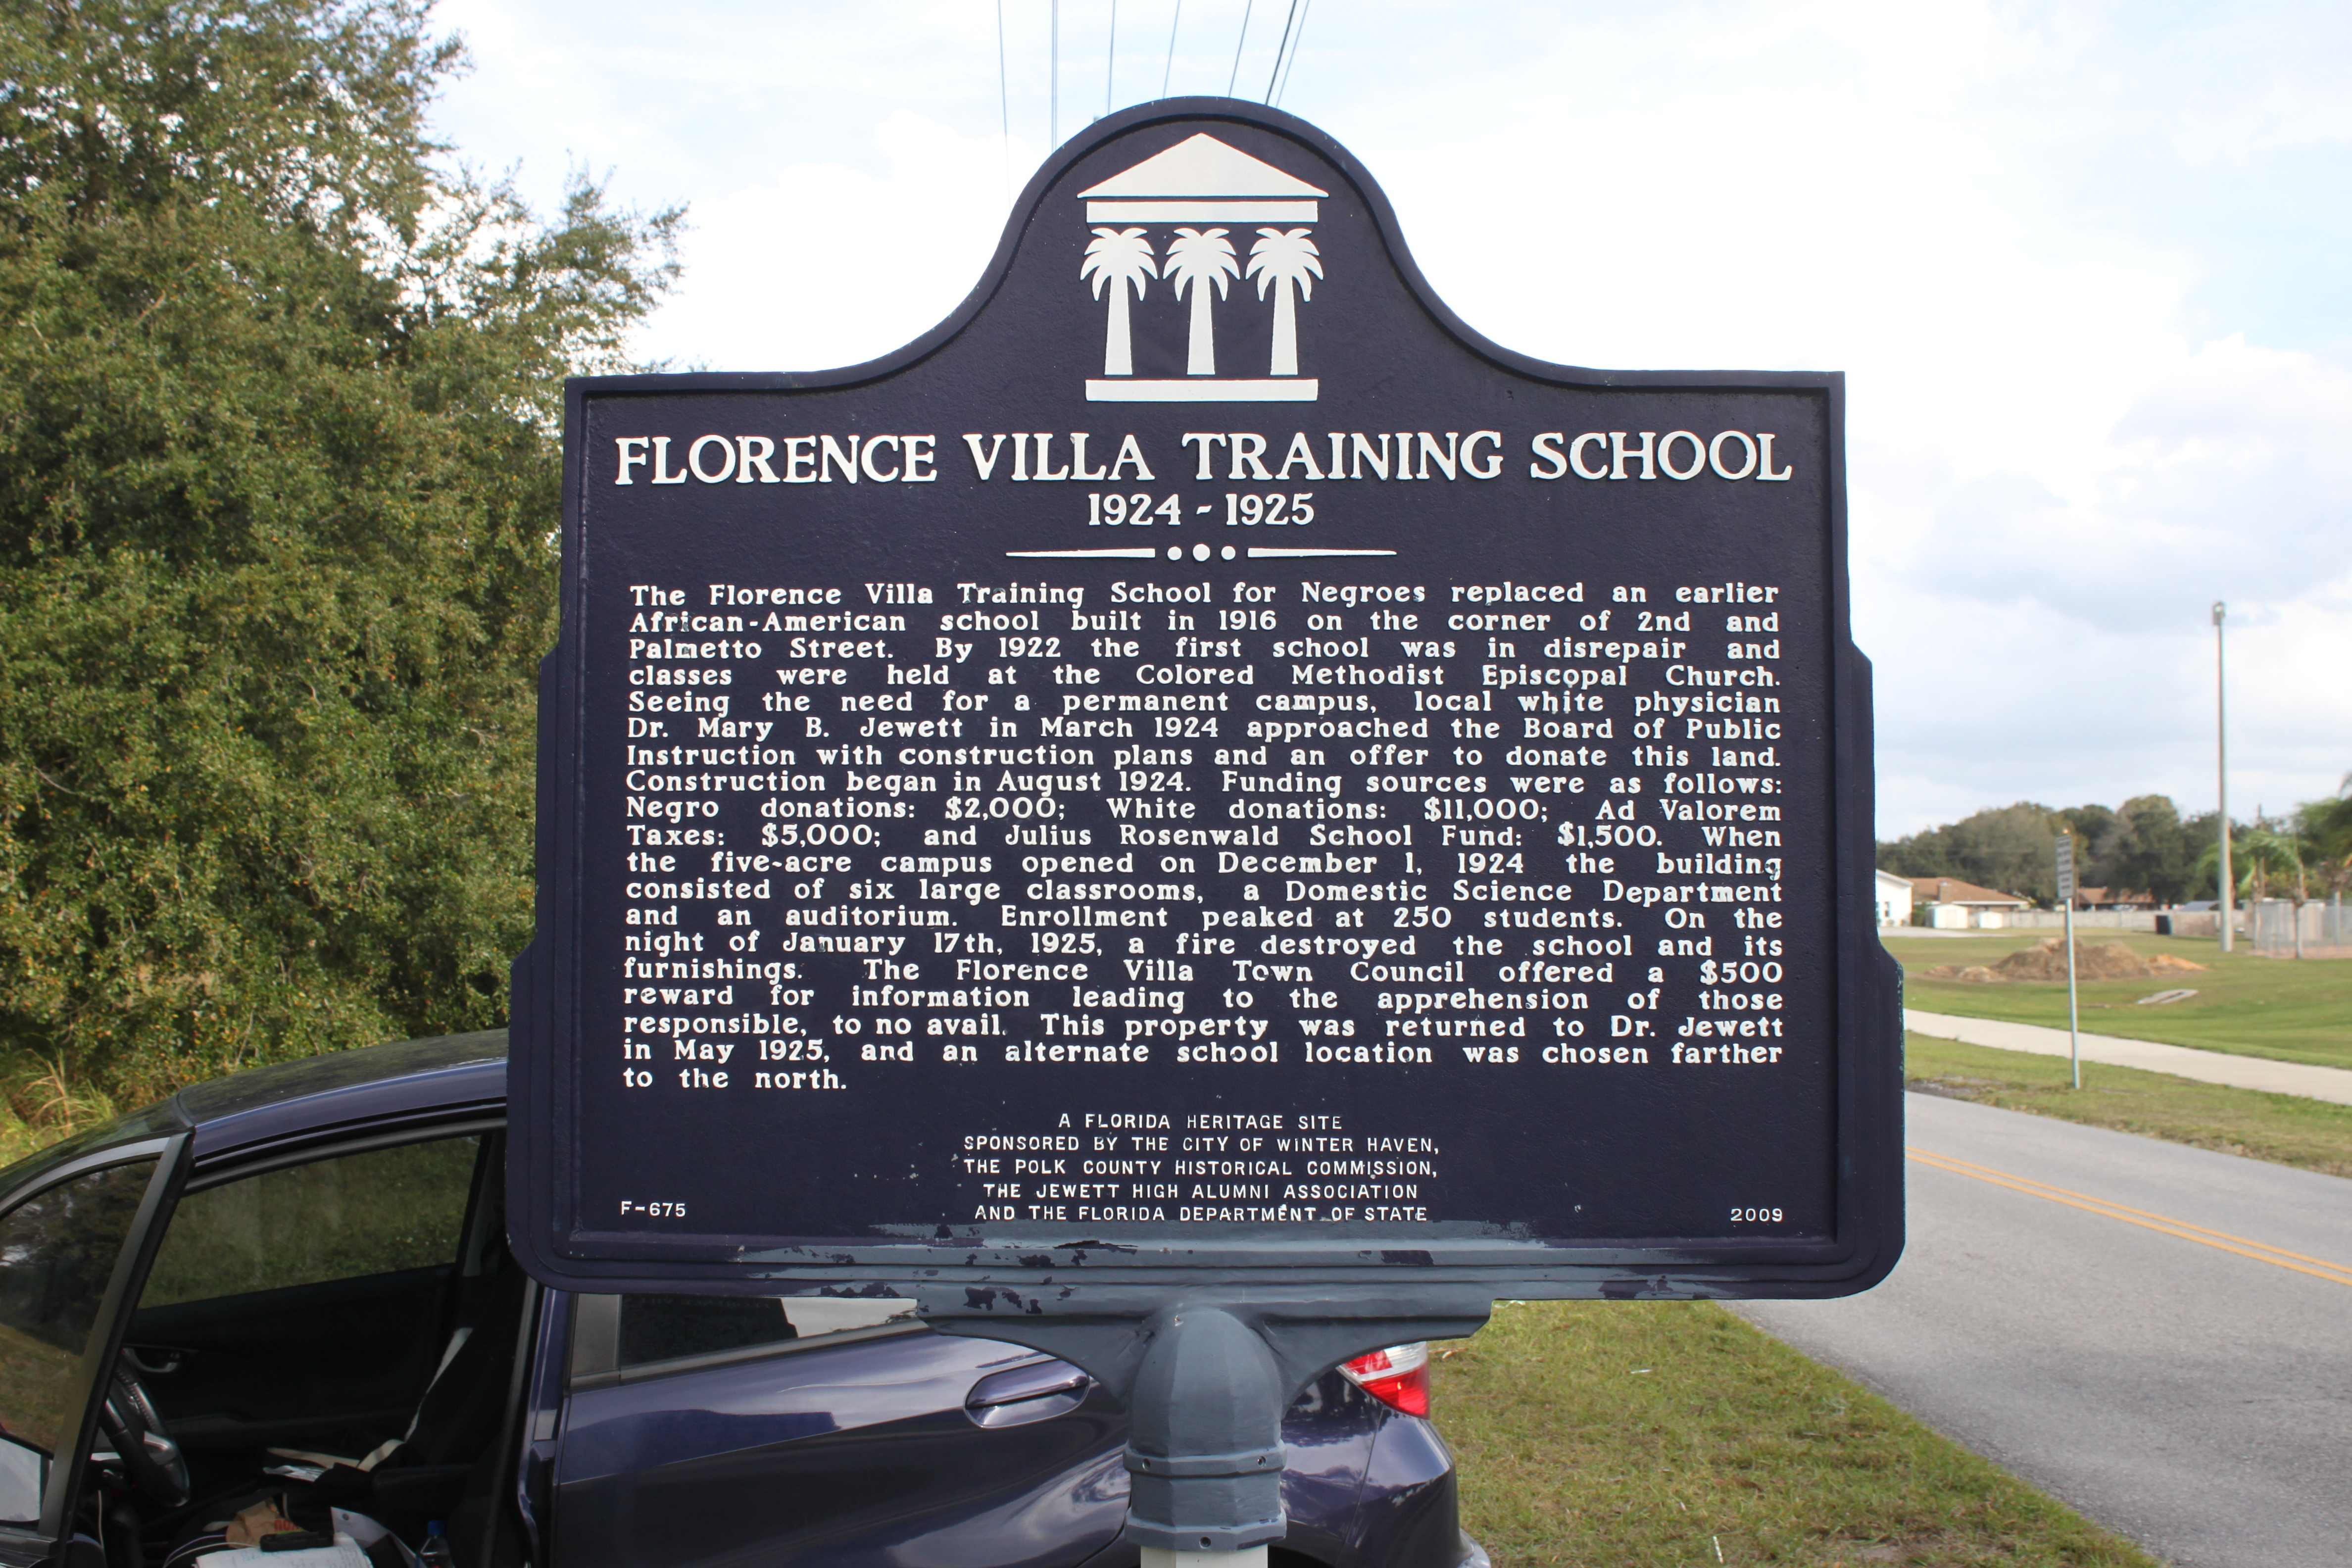 Florence Villa Training School 1924-1925 Marker